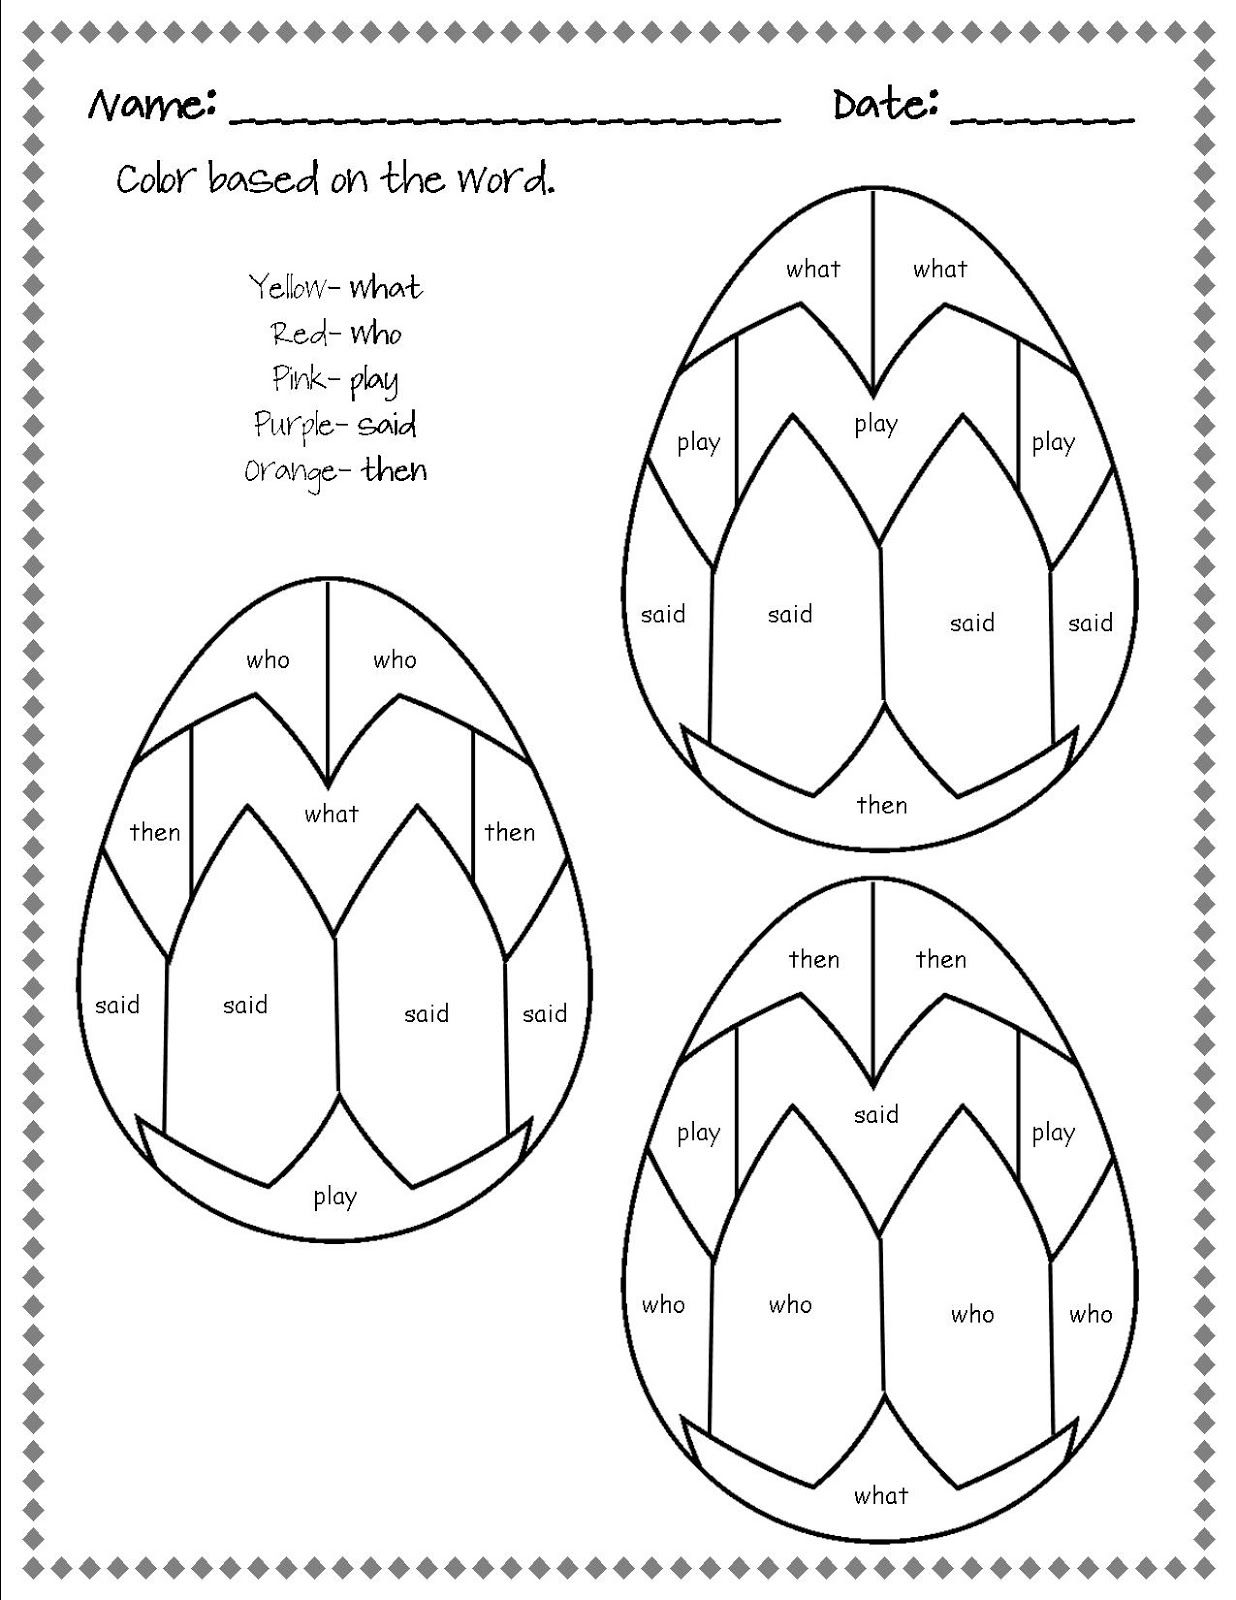 Tales from Outside the Classroom: Sight Words | Teaching | Pinterest